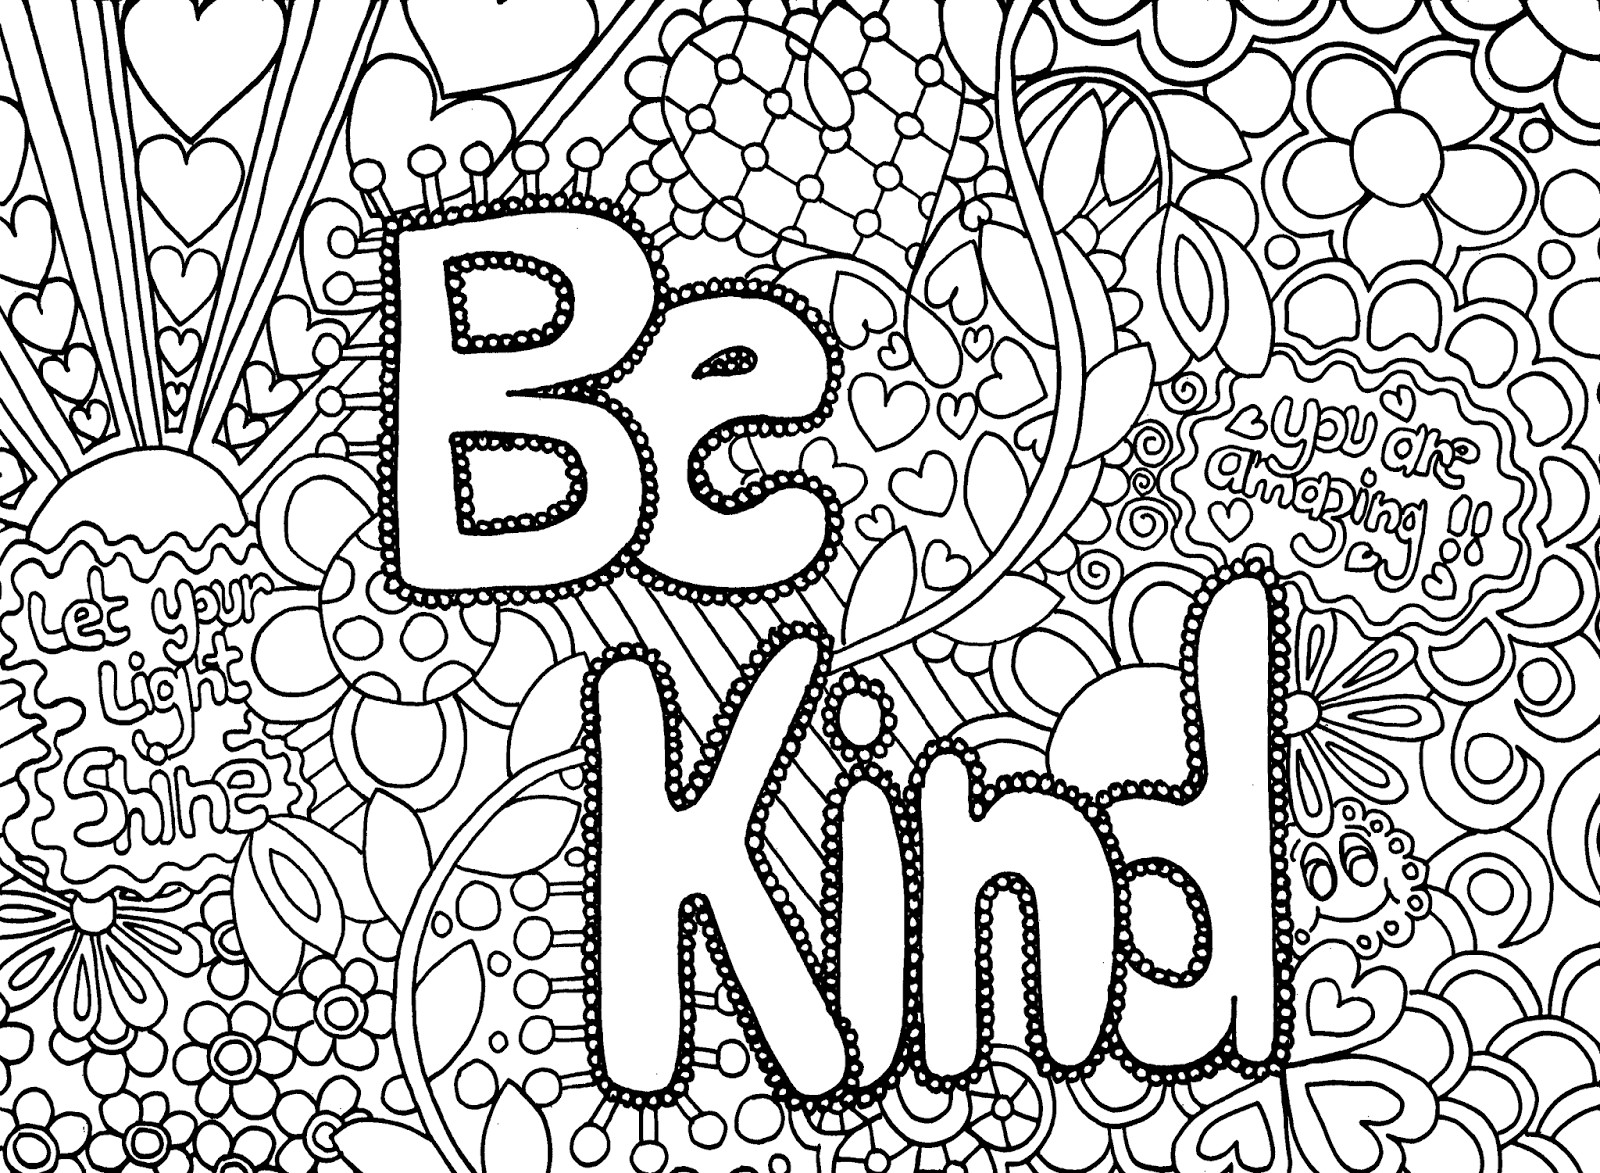 kindness bible coloring pages free printable kindness coloring pages in 2020 bible pages coloring bible kindness